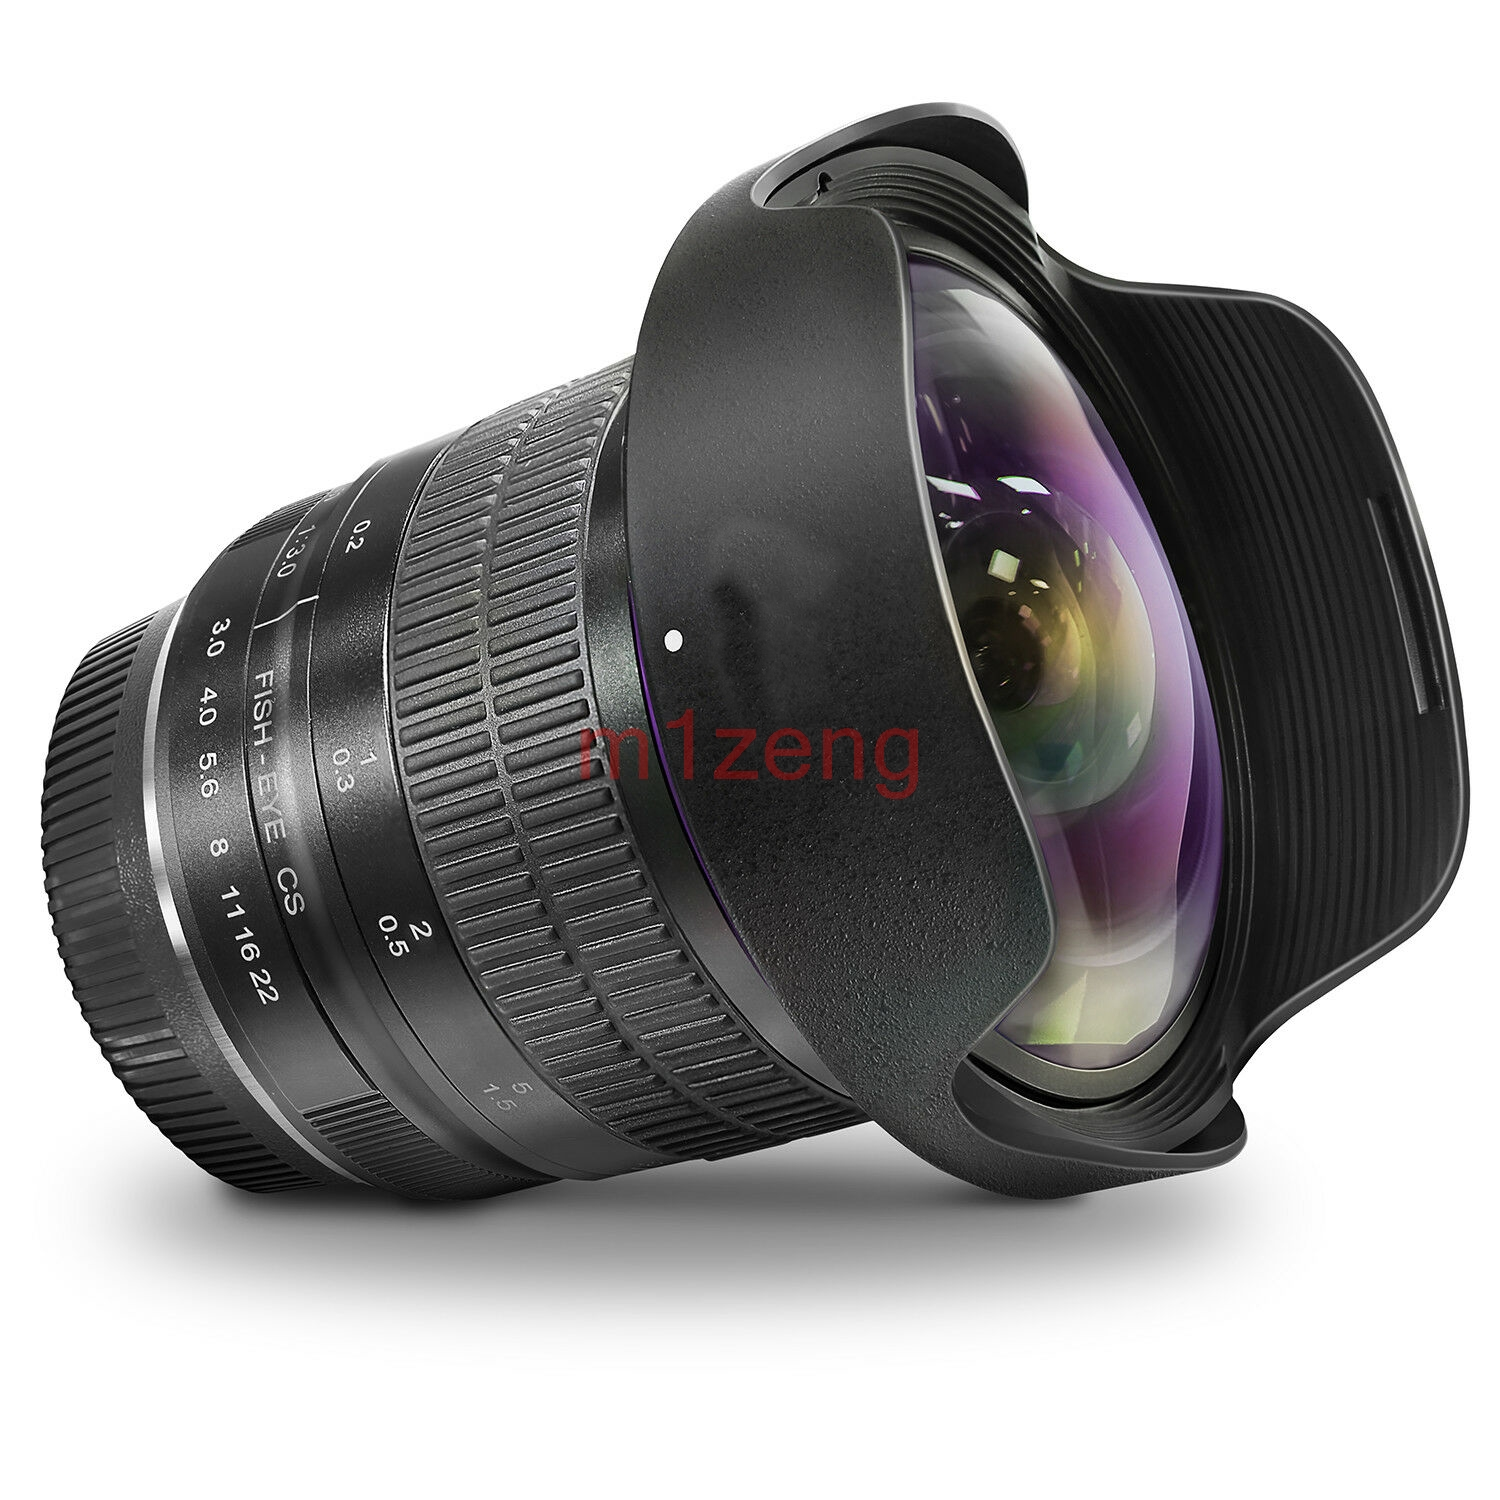 8mm F3.0 Ultra Wide Fisheye Manual Prime camera <font><b>LENS</b></font> for <font><b>canon</b></font> 60d <font><b>80d</b></font> 90d nikon D90 D300S d500 d750 D7100 D5300 D3200 camera image